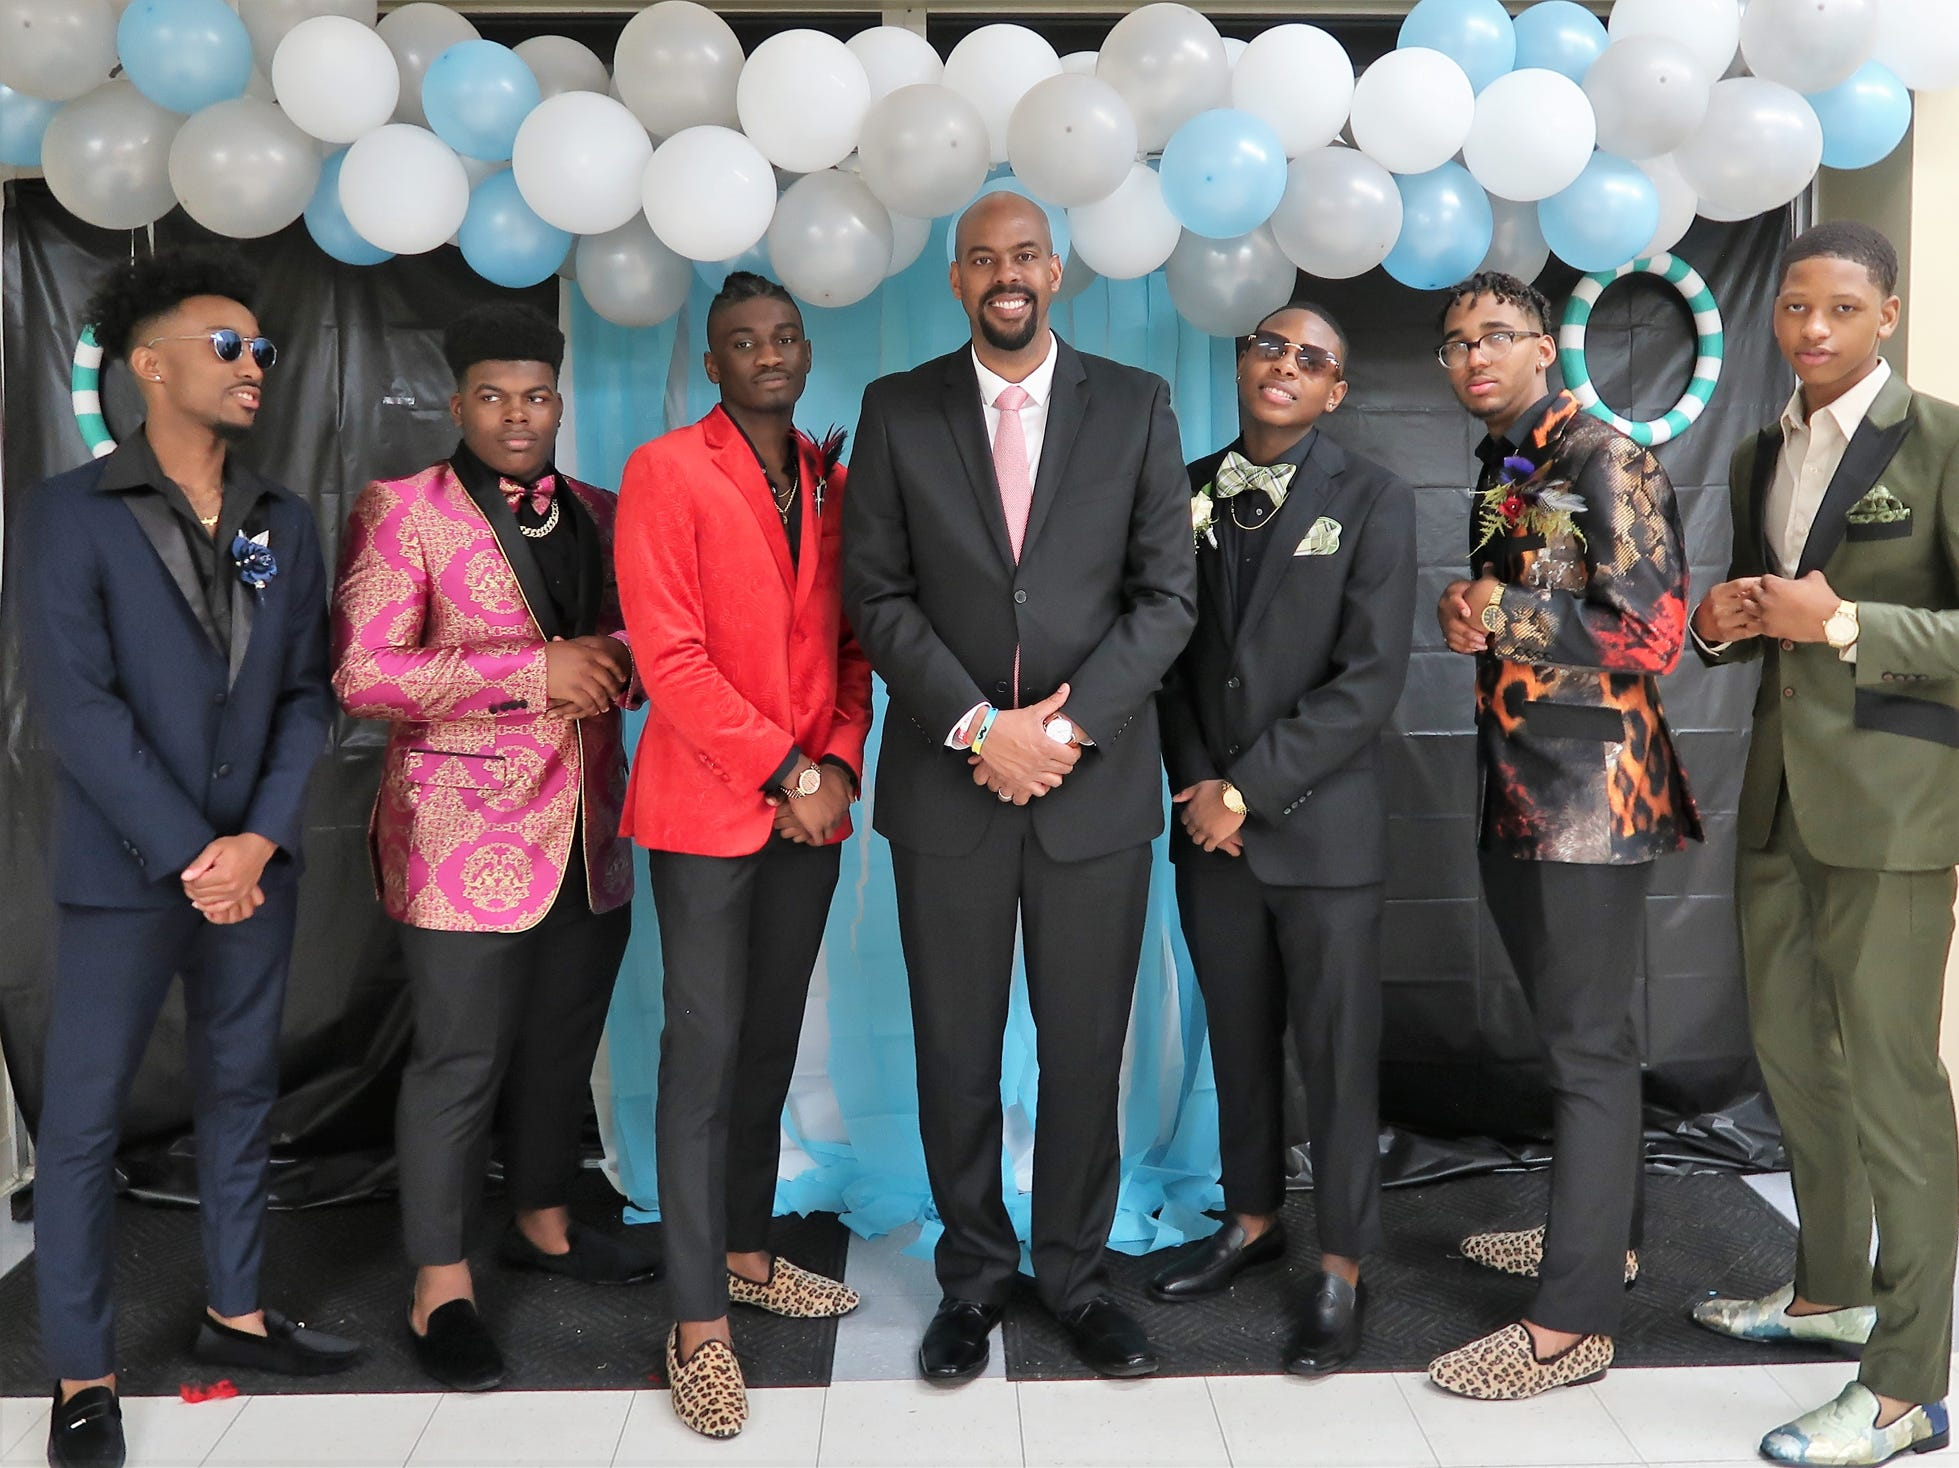 North Side High School held their 2019 prom, Friday, April 26.